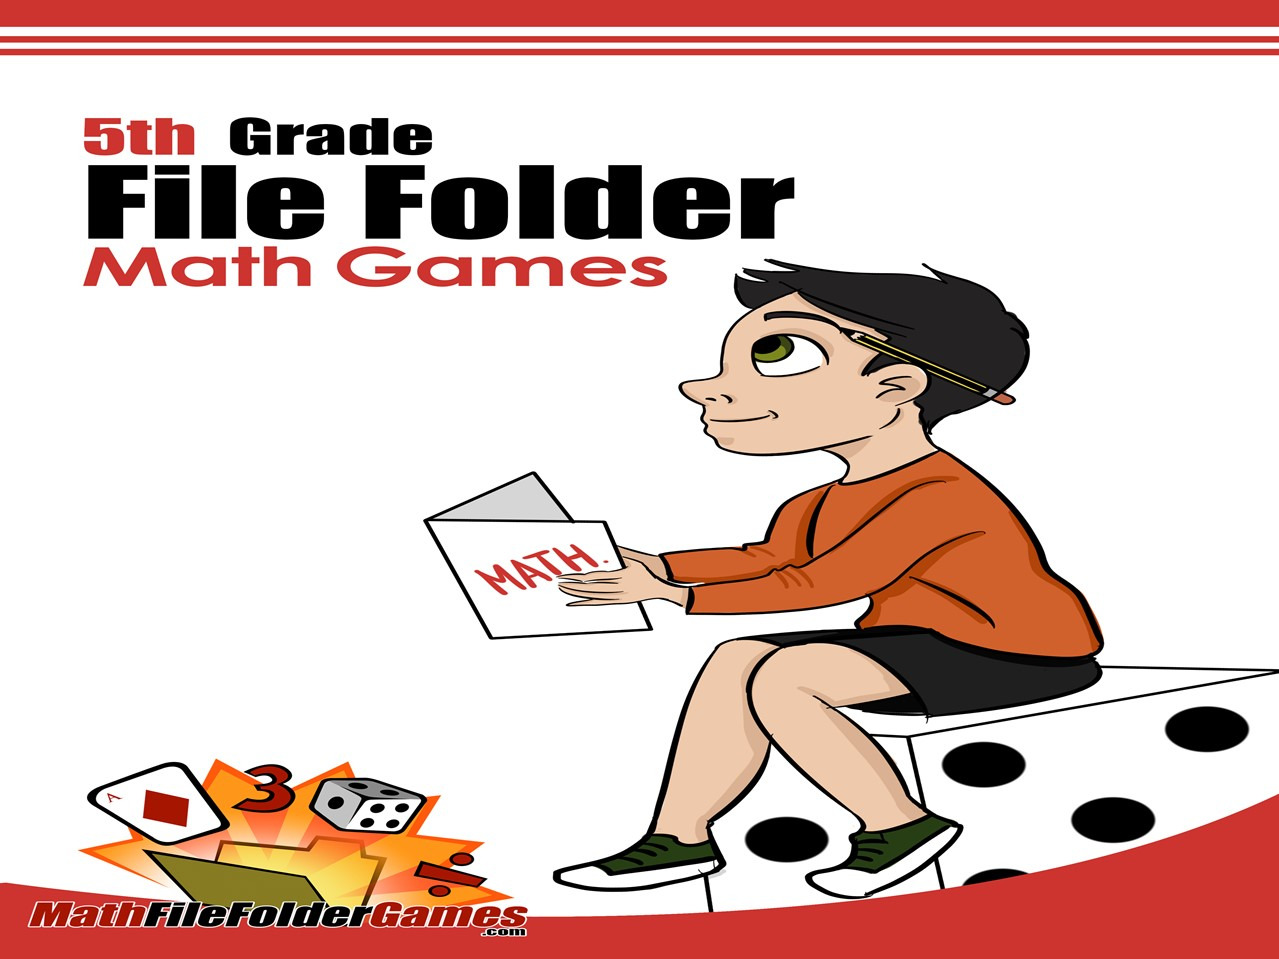 5th Grade File Folder Math Games